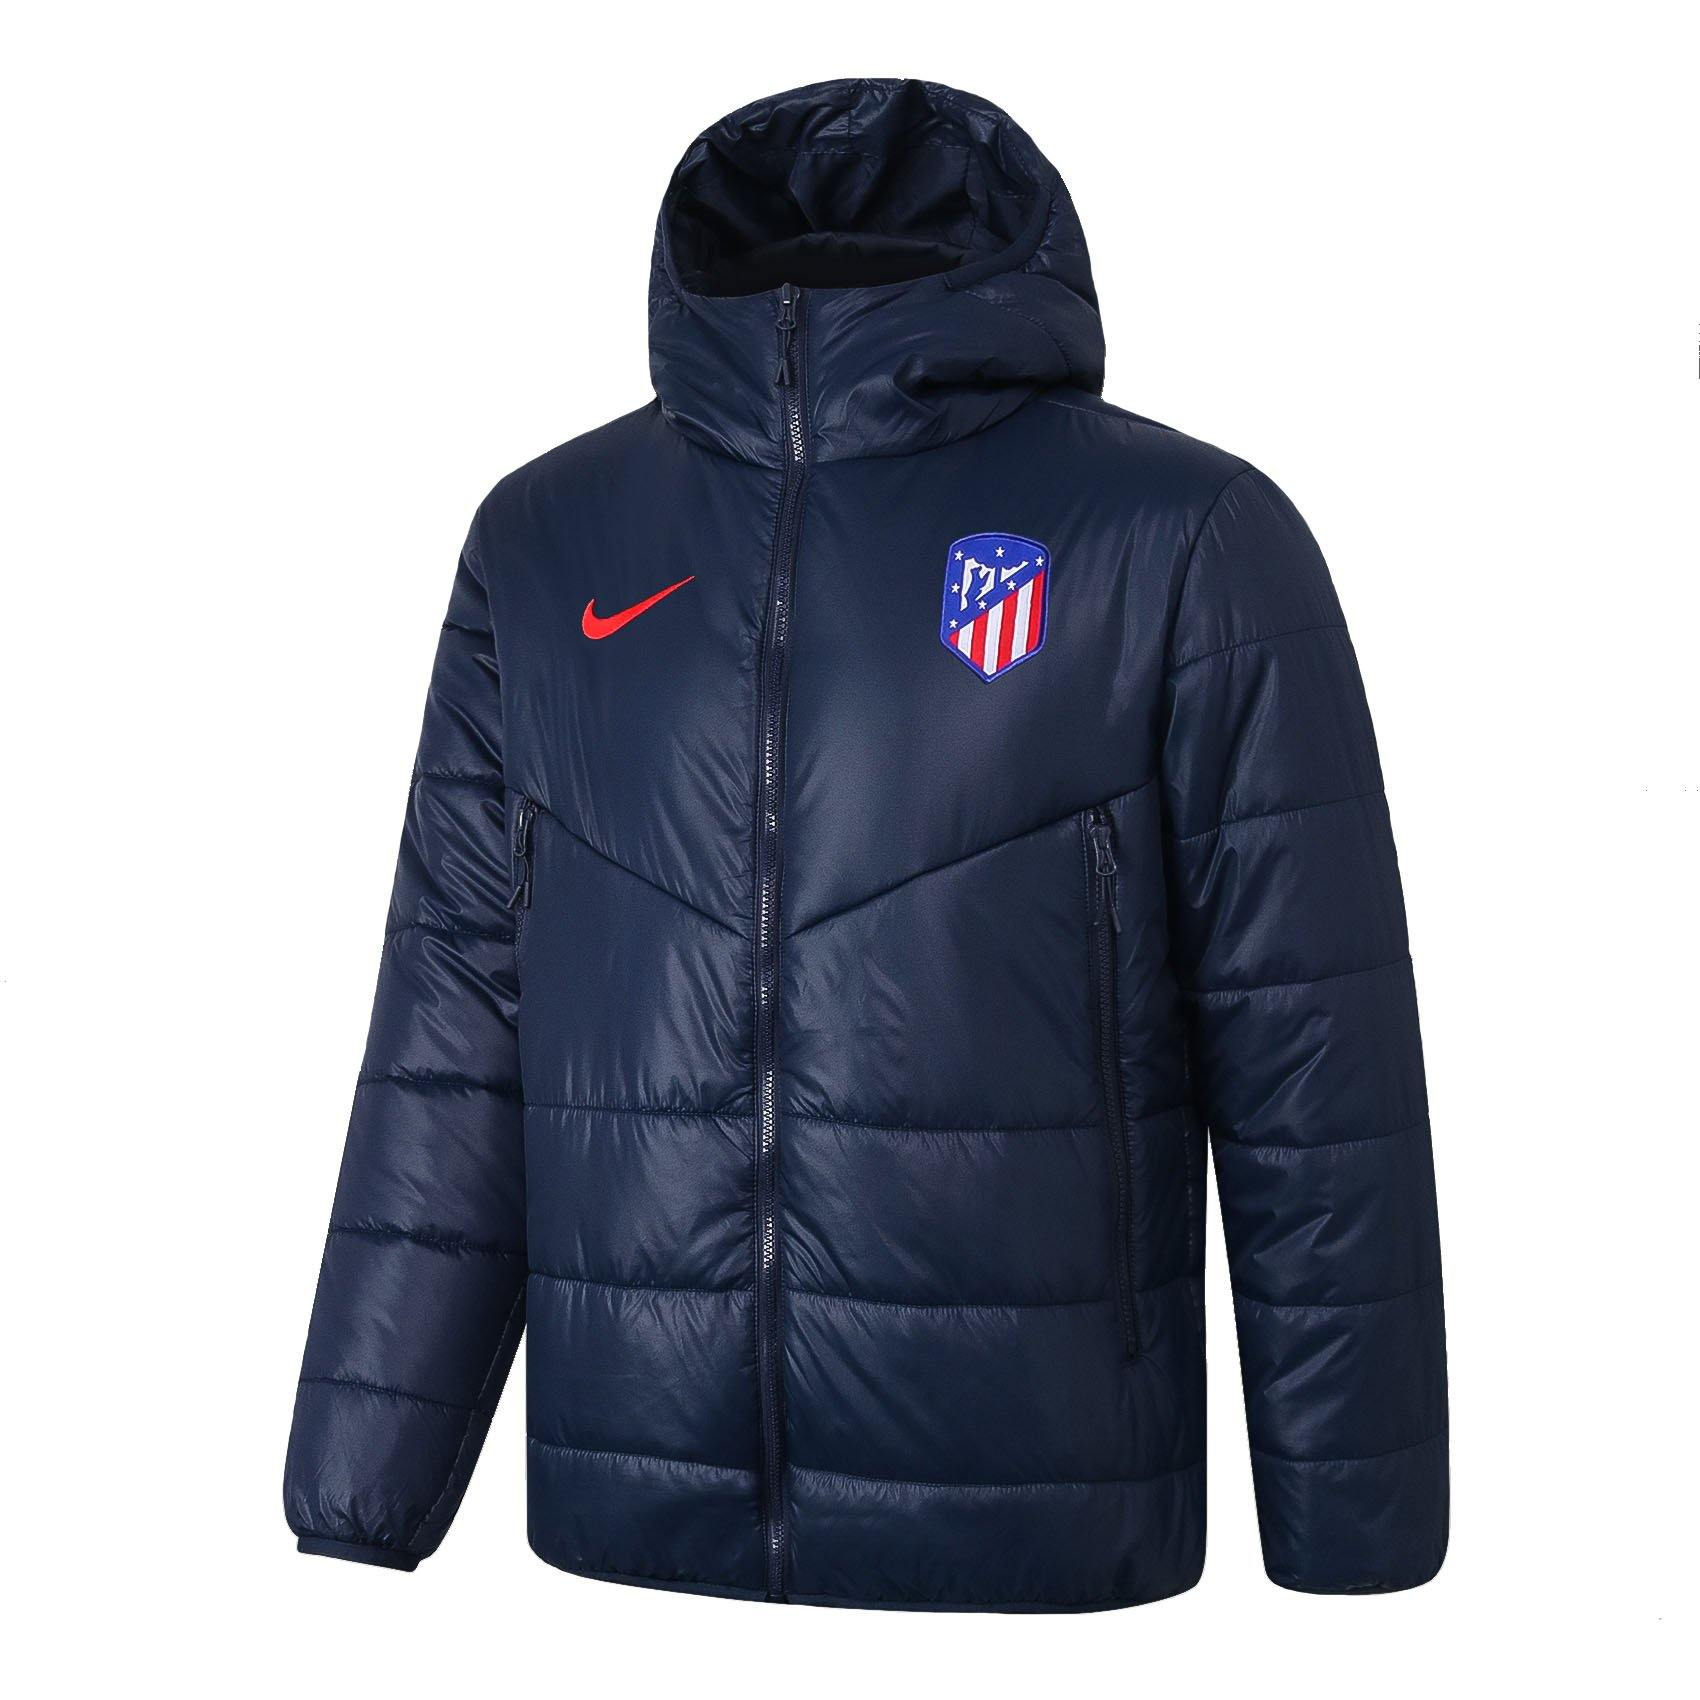 Doudoune Atletico Madrid Nike Bleu 2021 Homme Foot Online freeshipping - Foot Online